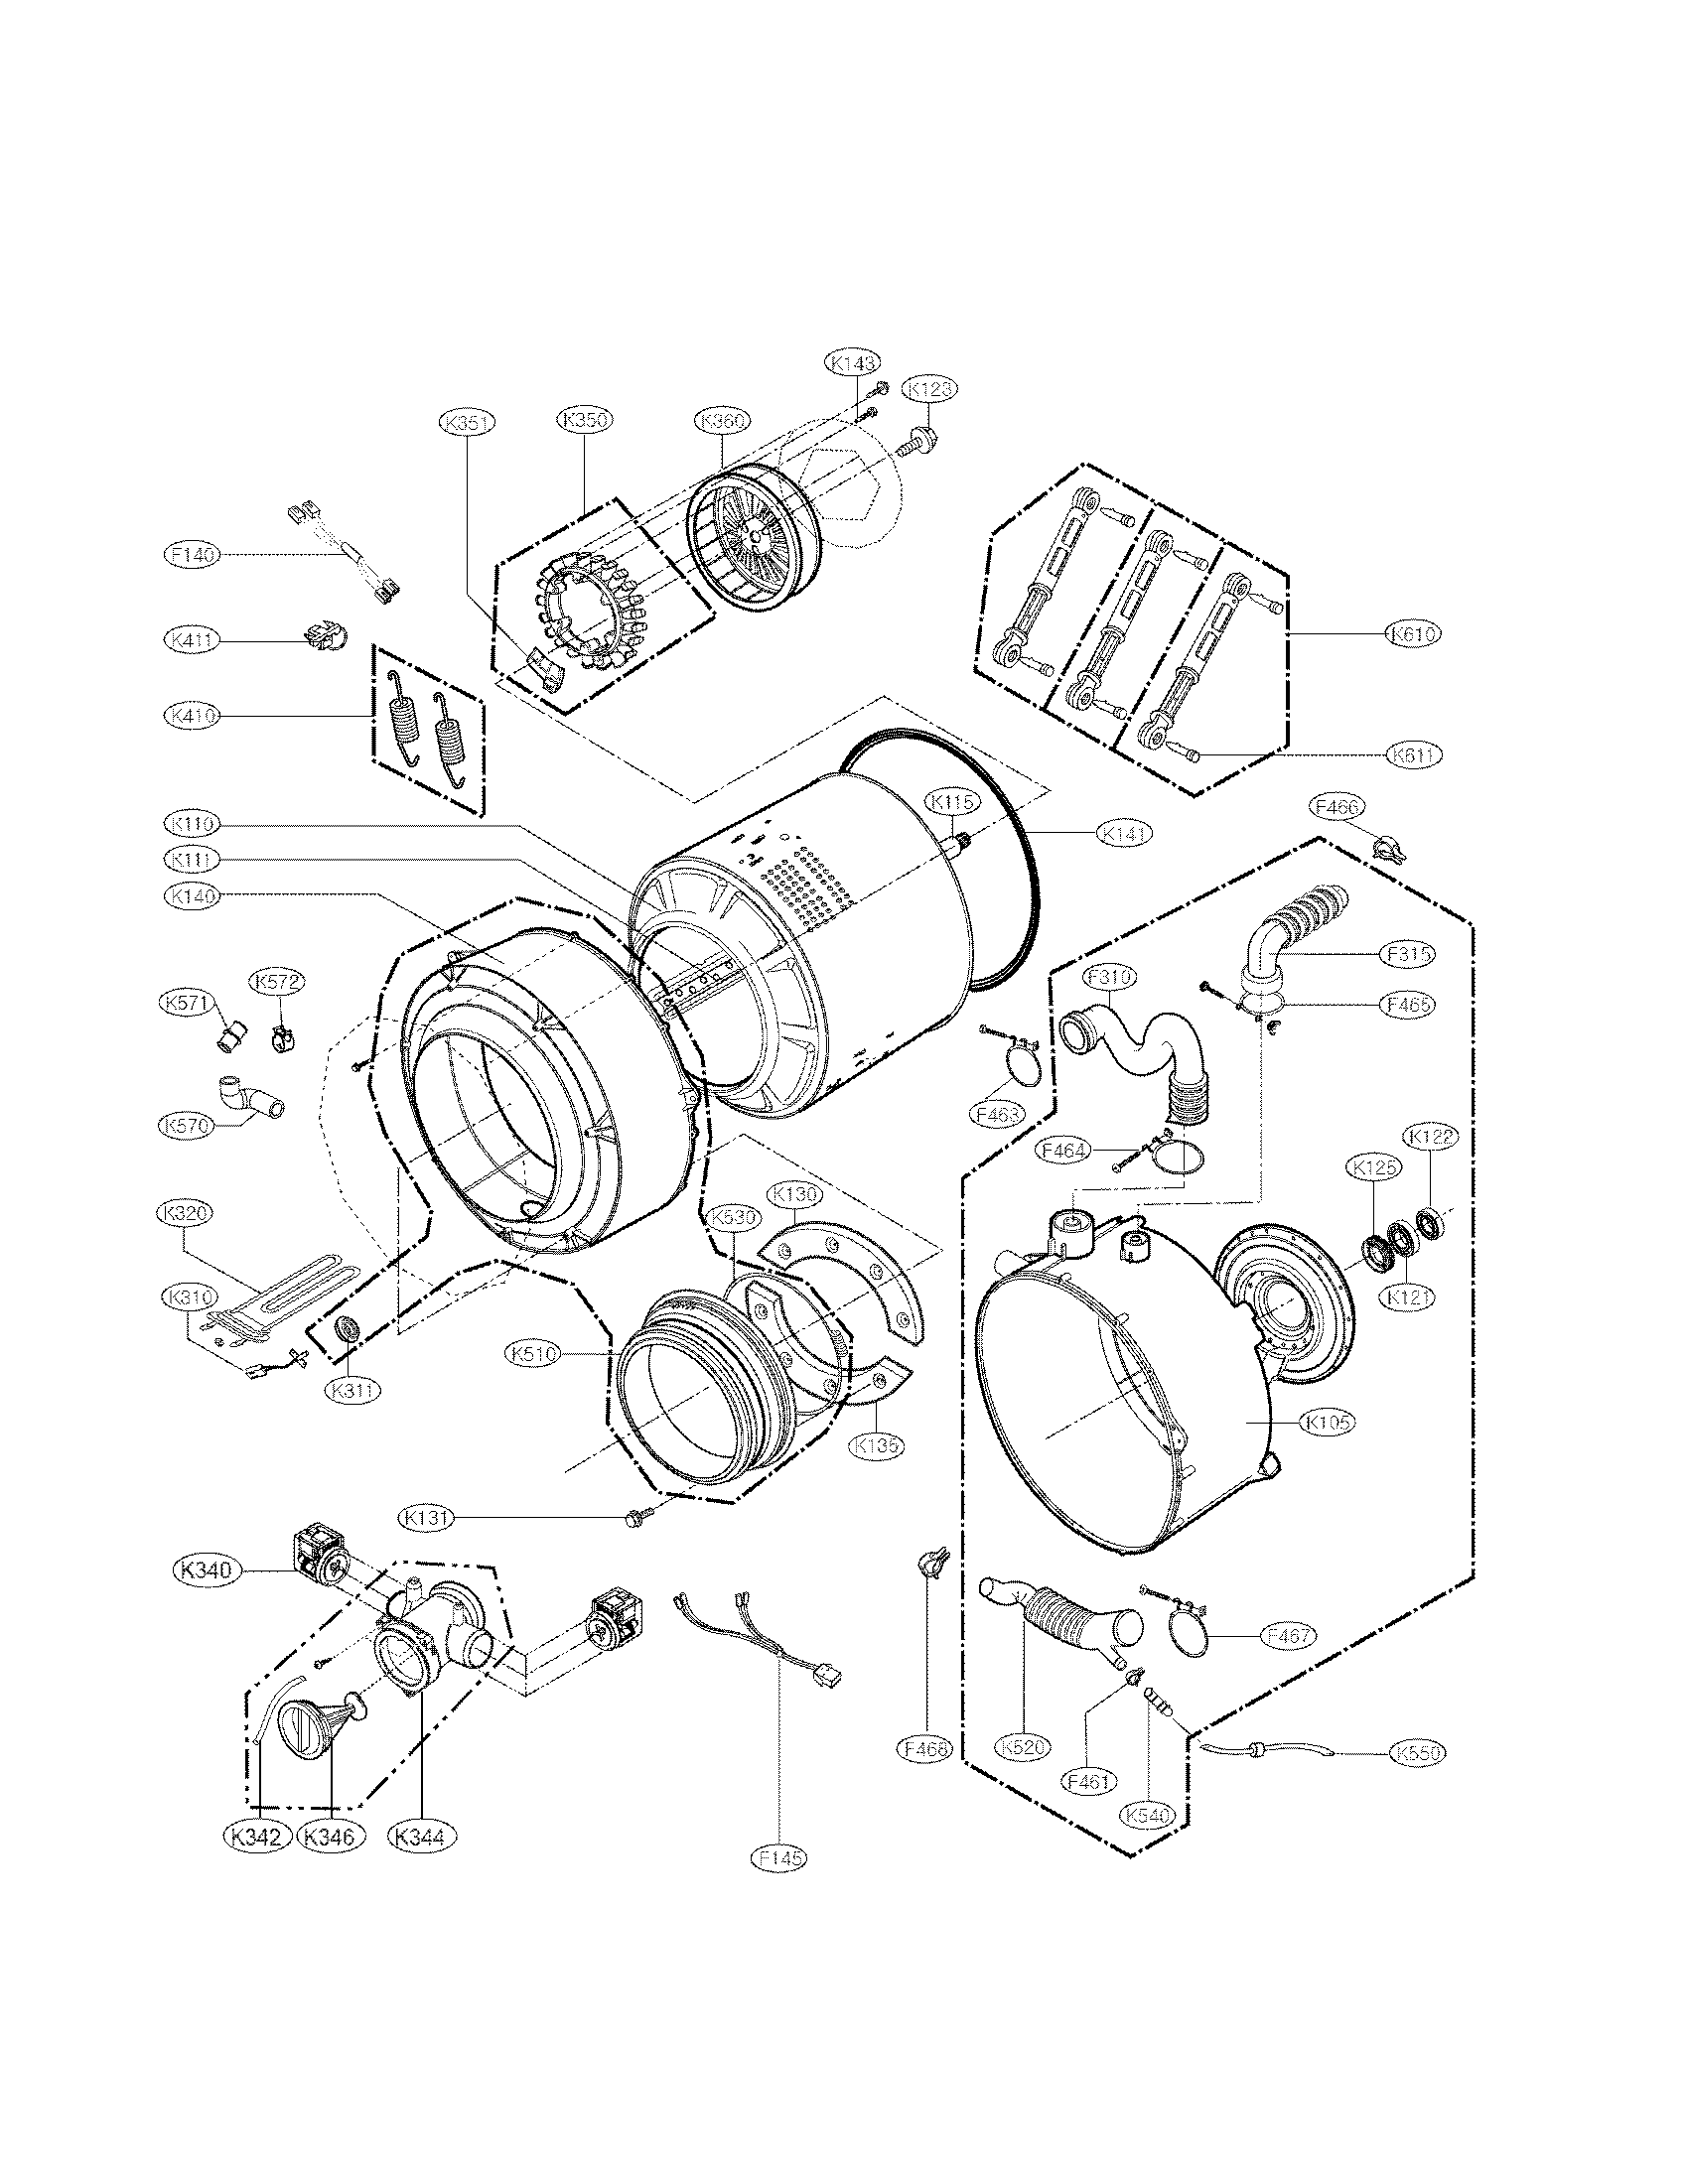 Lg Wm Hw Washer Drain Pump And Motor Assembly